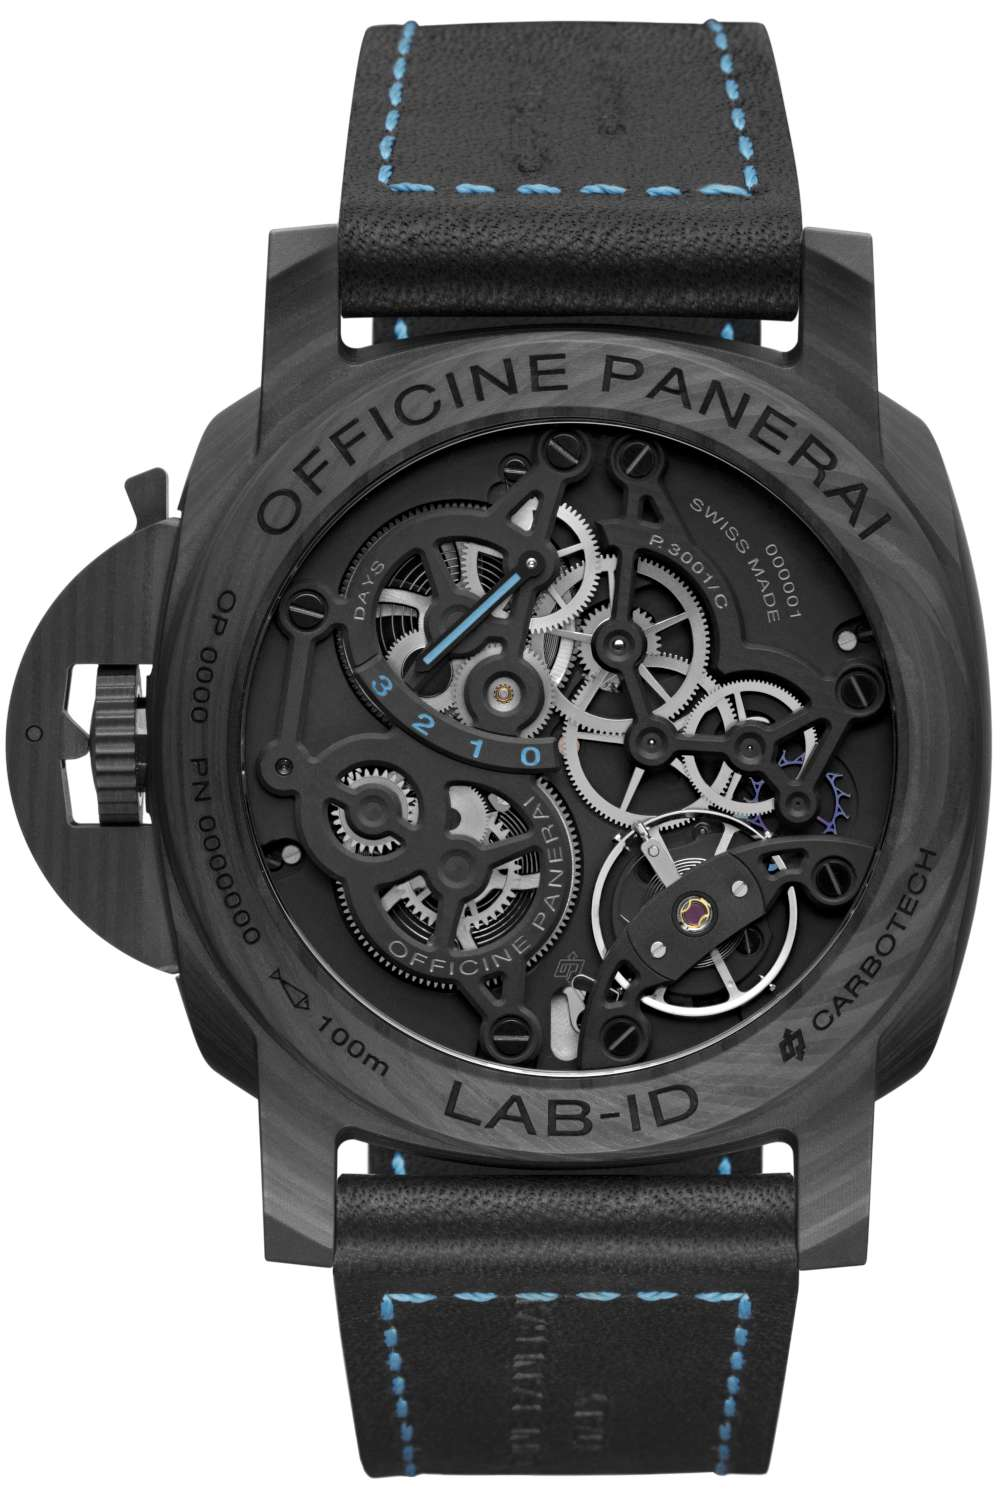 Panerai LAB-ID Luminor 1950 Carbotech 3 Days PAM 00700, caseback